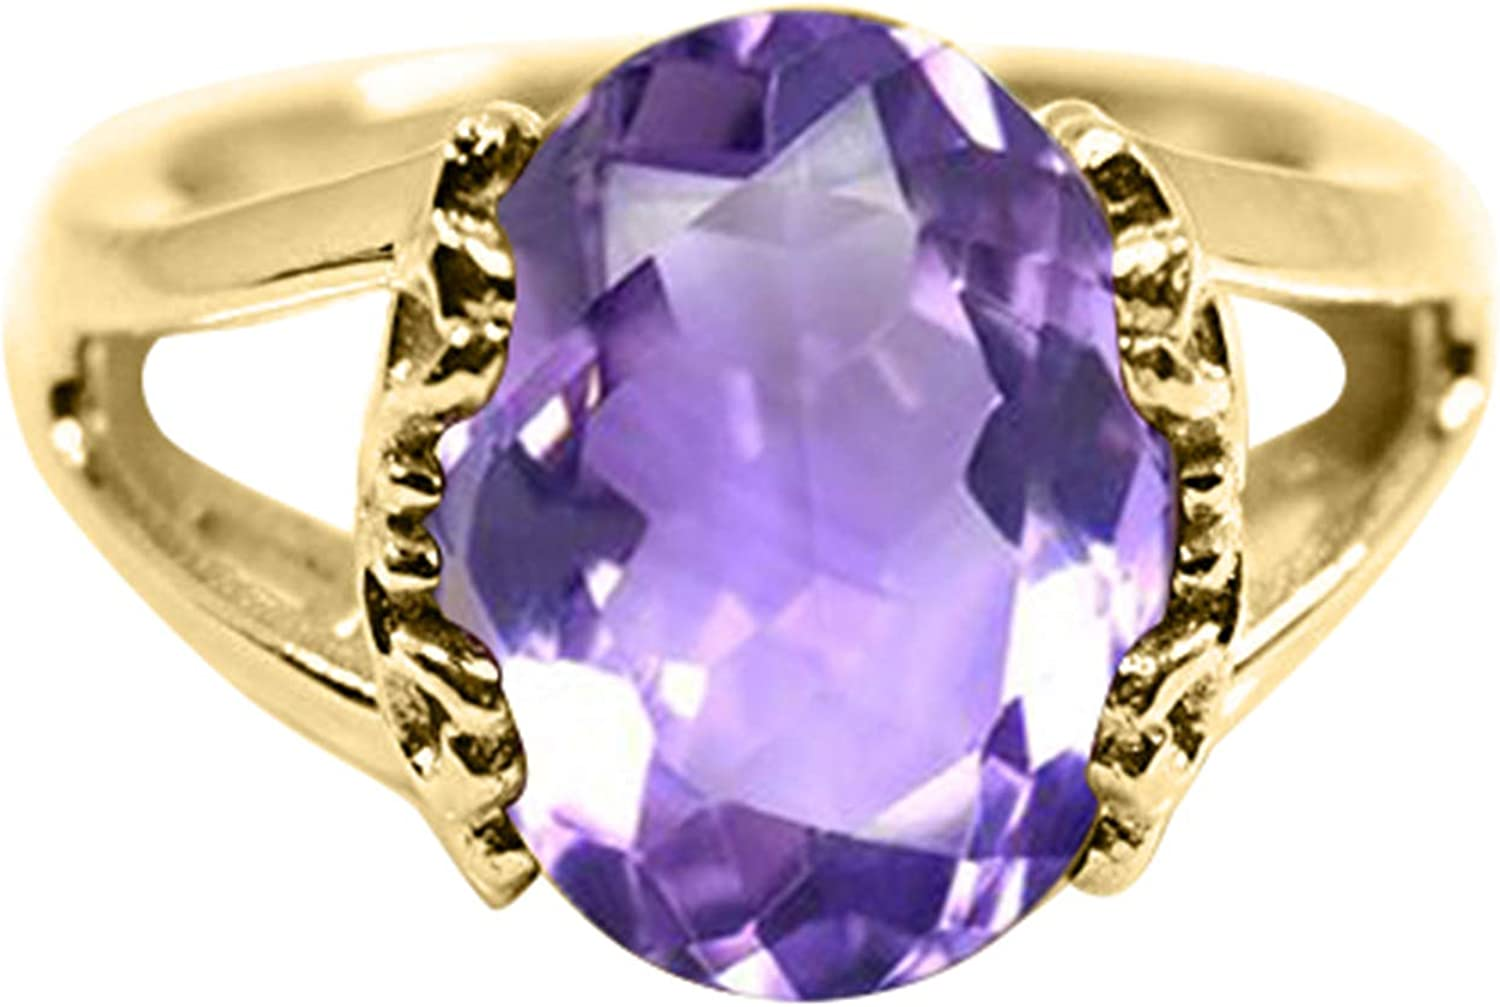 Gemsonclick Natural Handmade Feburary Birthstone Amethyst 925 Sterling Silver Ring for Women Sizes 4-13